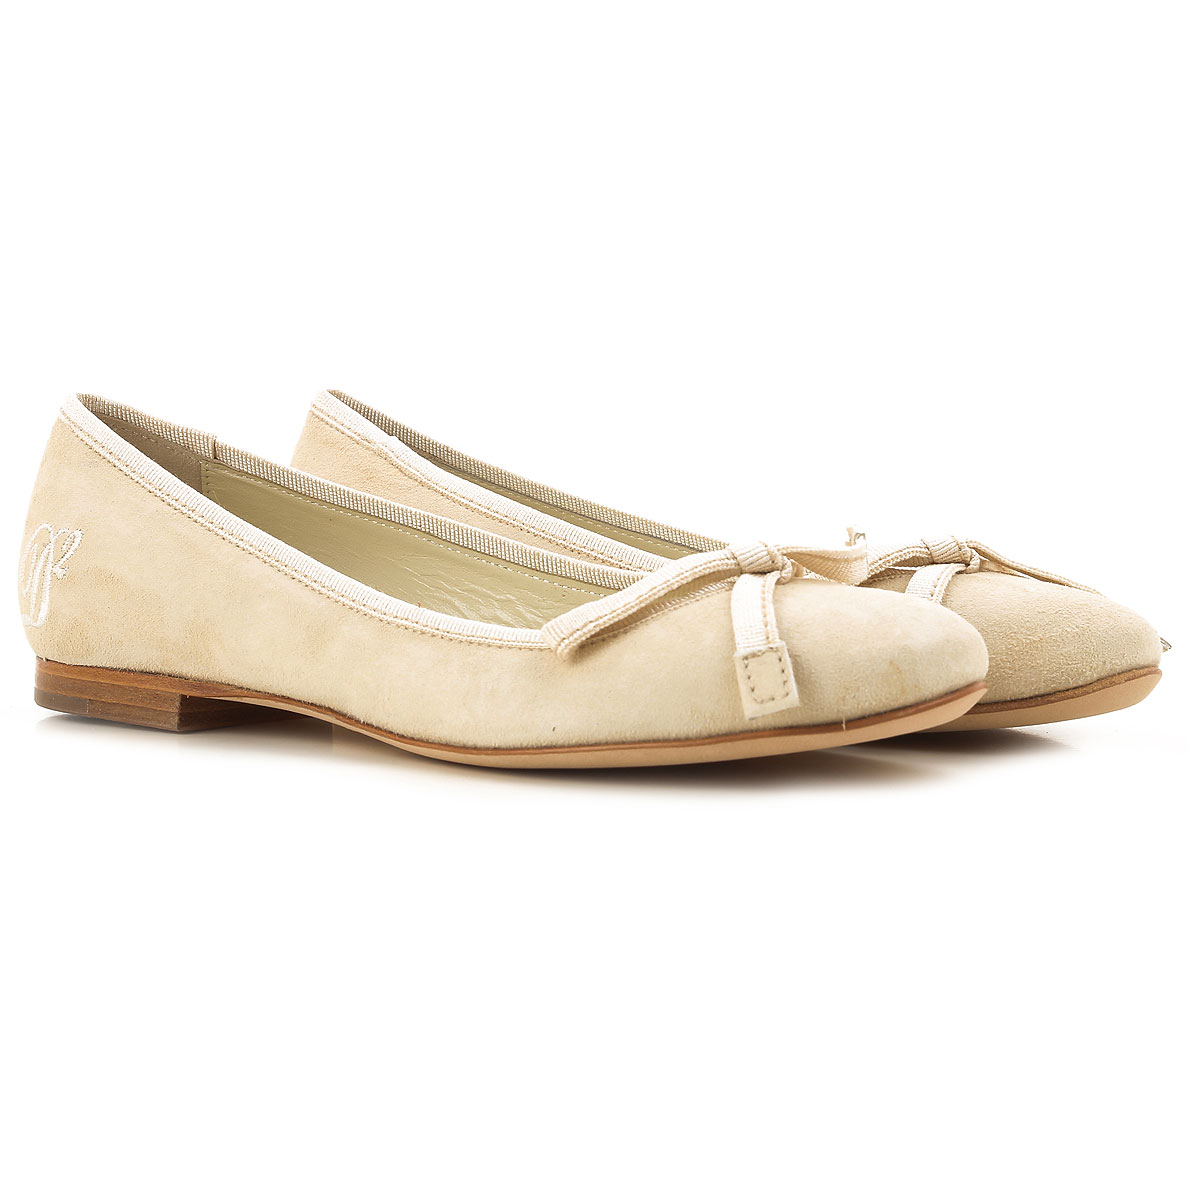 Dsquared2 Ballet Flats Ballerina Shoes for Women On Sale in Outlet, Natural, Suede leather, 2019, 5 6